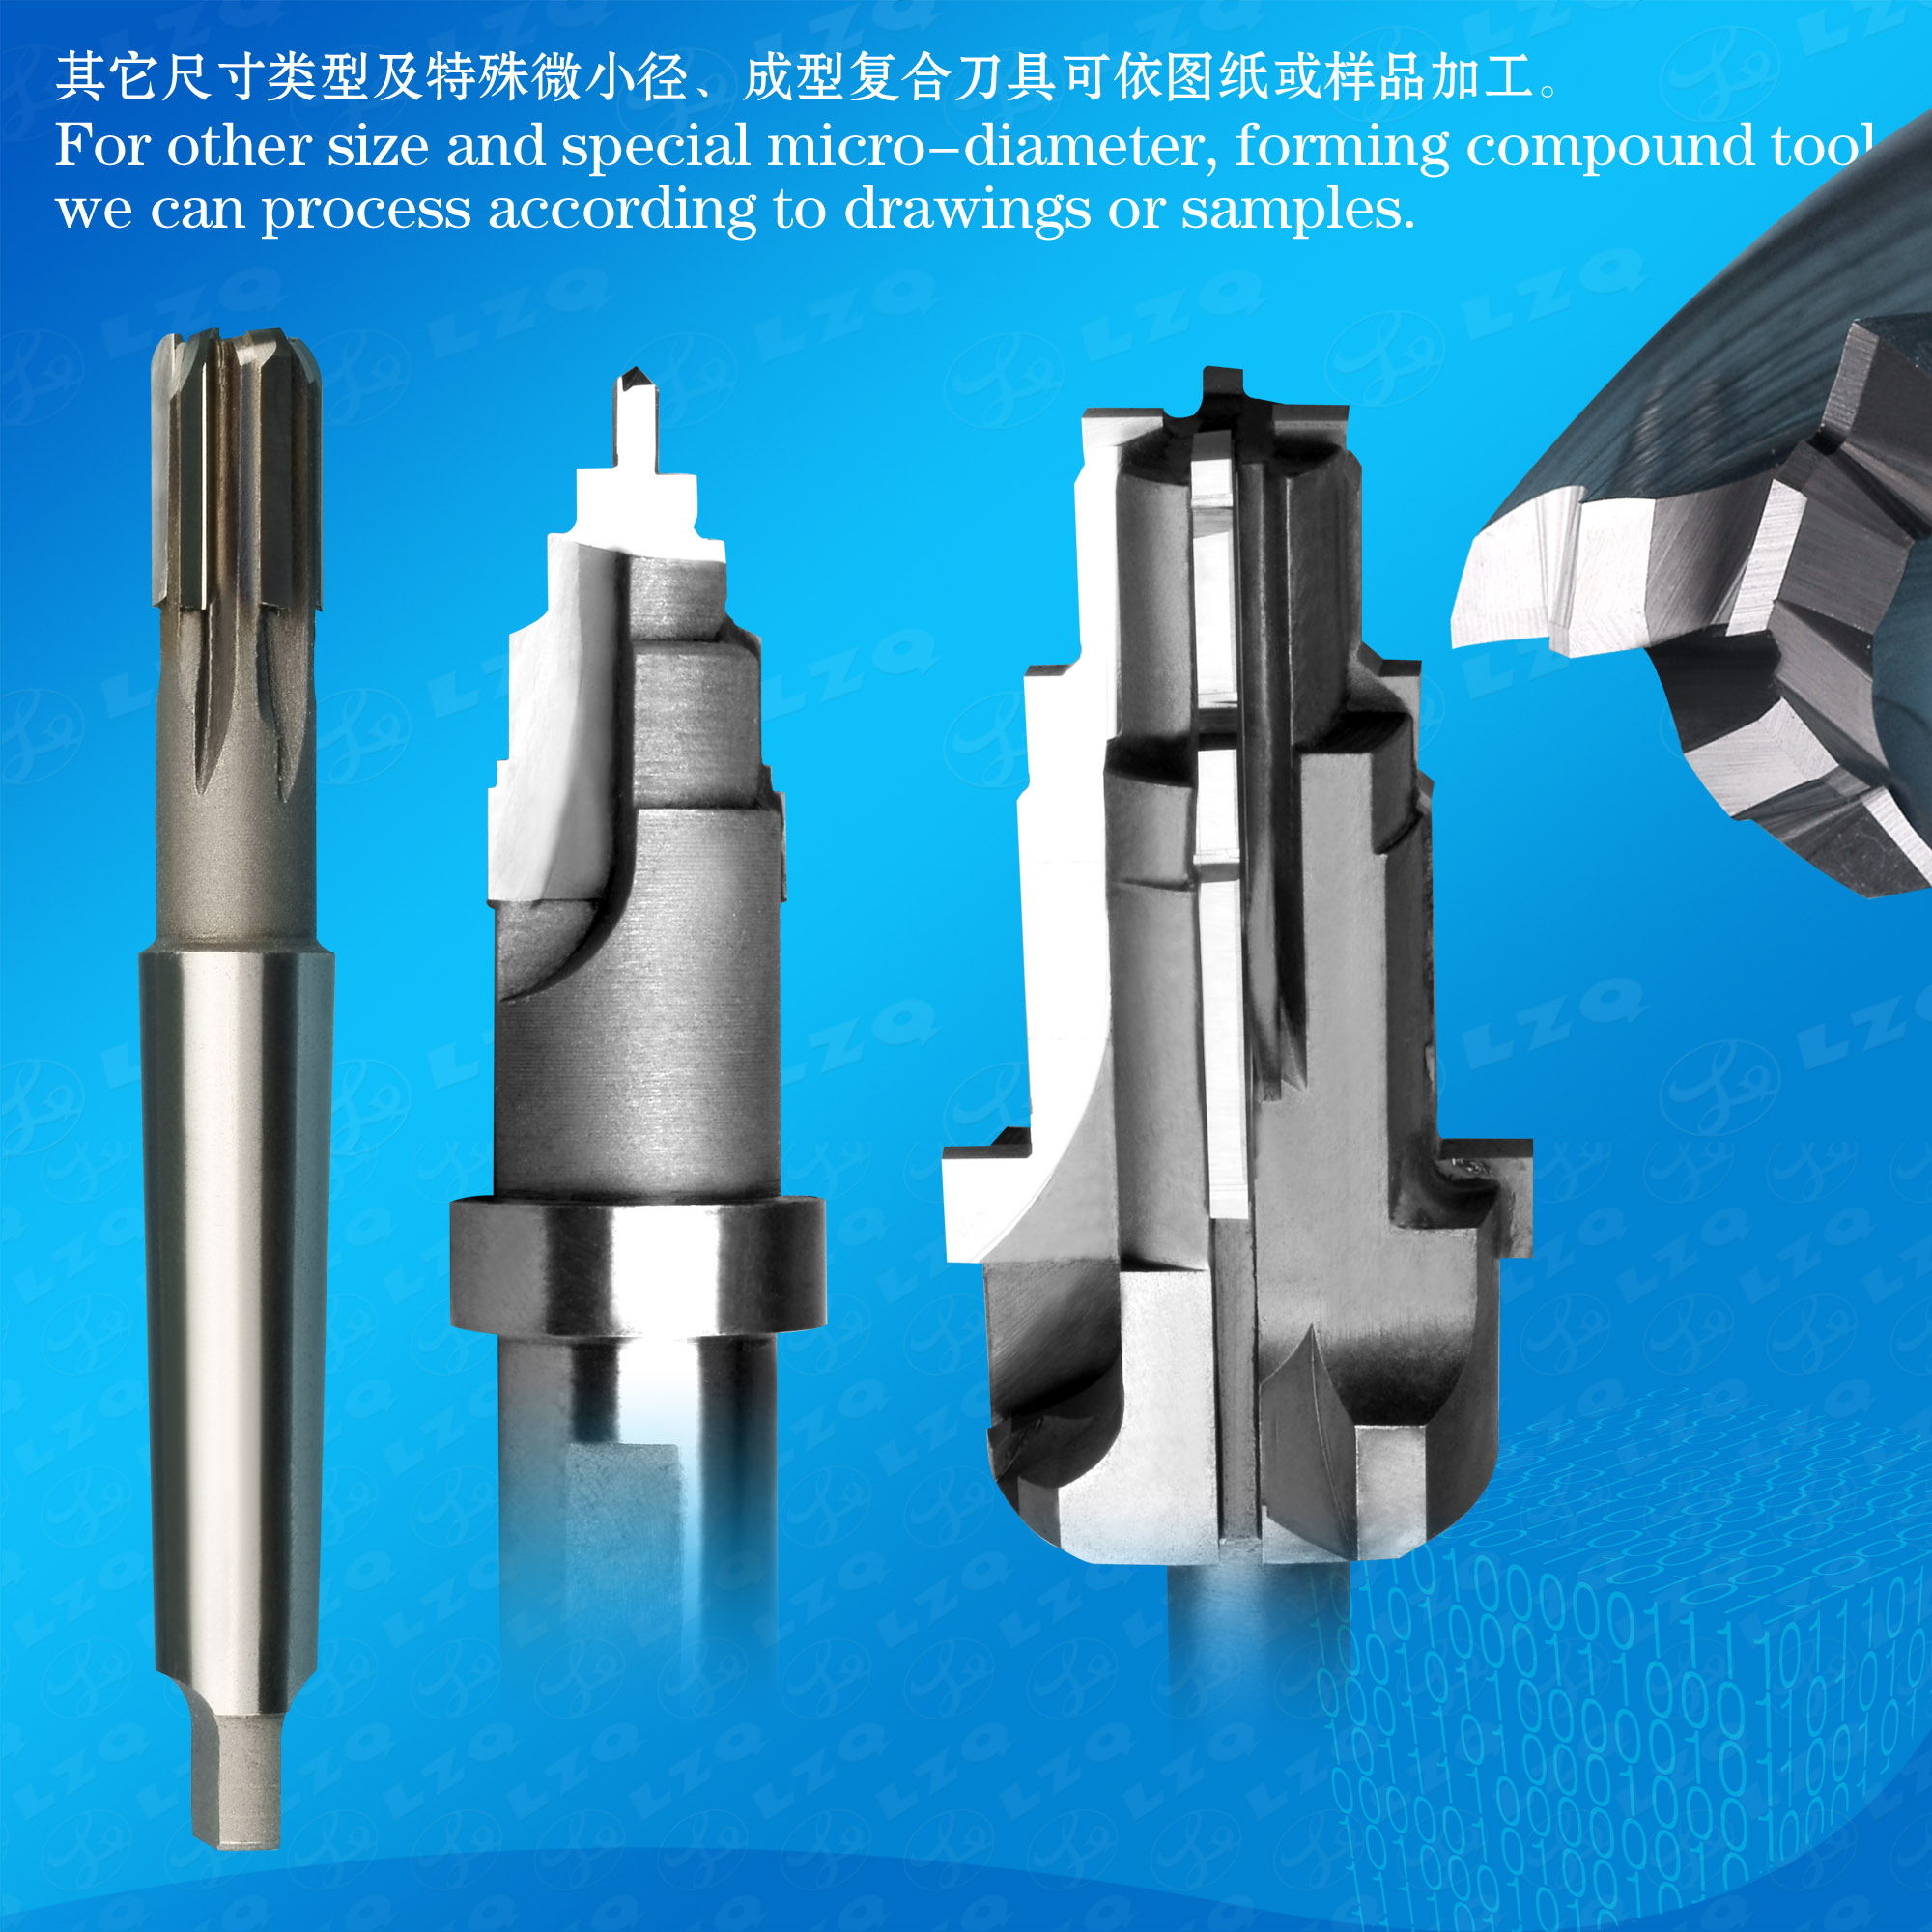 Subland Drill, Stepped Reamer,High Speed Steel Step Drill, High Speed Steel Stepped Reamer